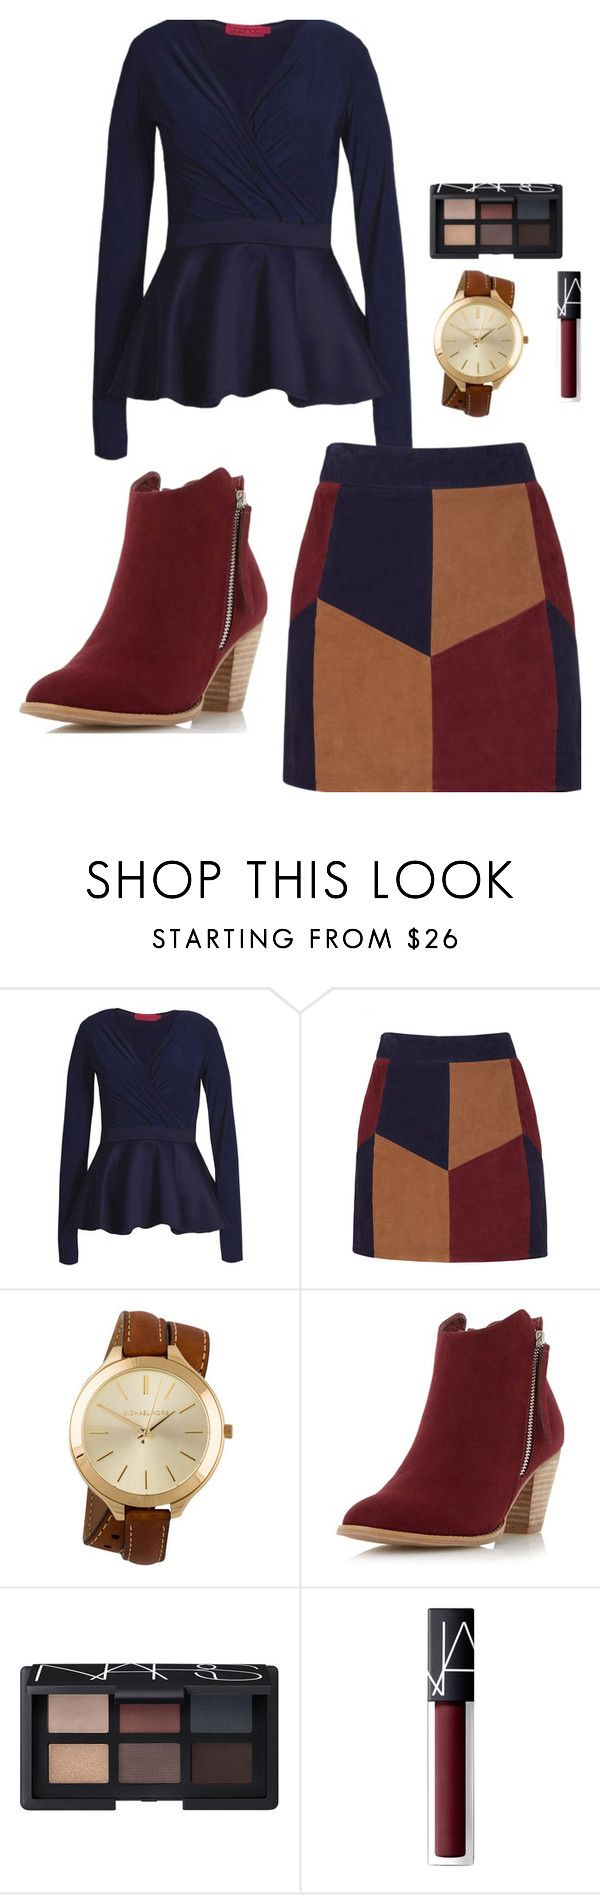 """Church outfit"" by randa1319 on Polyvore featuring Boohoo, LaMarque, Michael Kors, Dorothy Perkins and NARS Cosmetics"